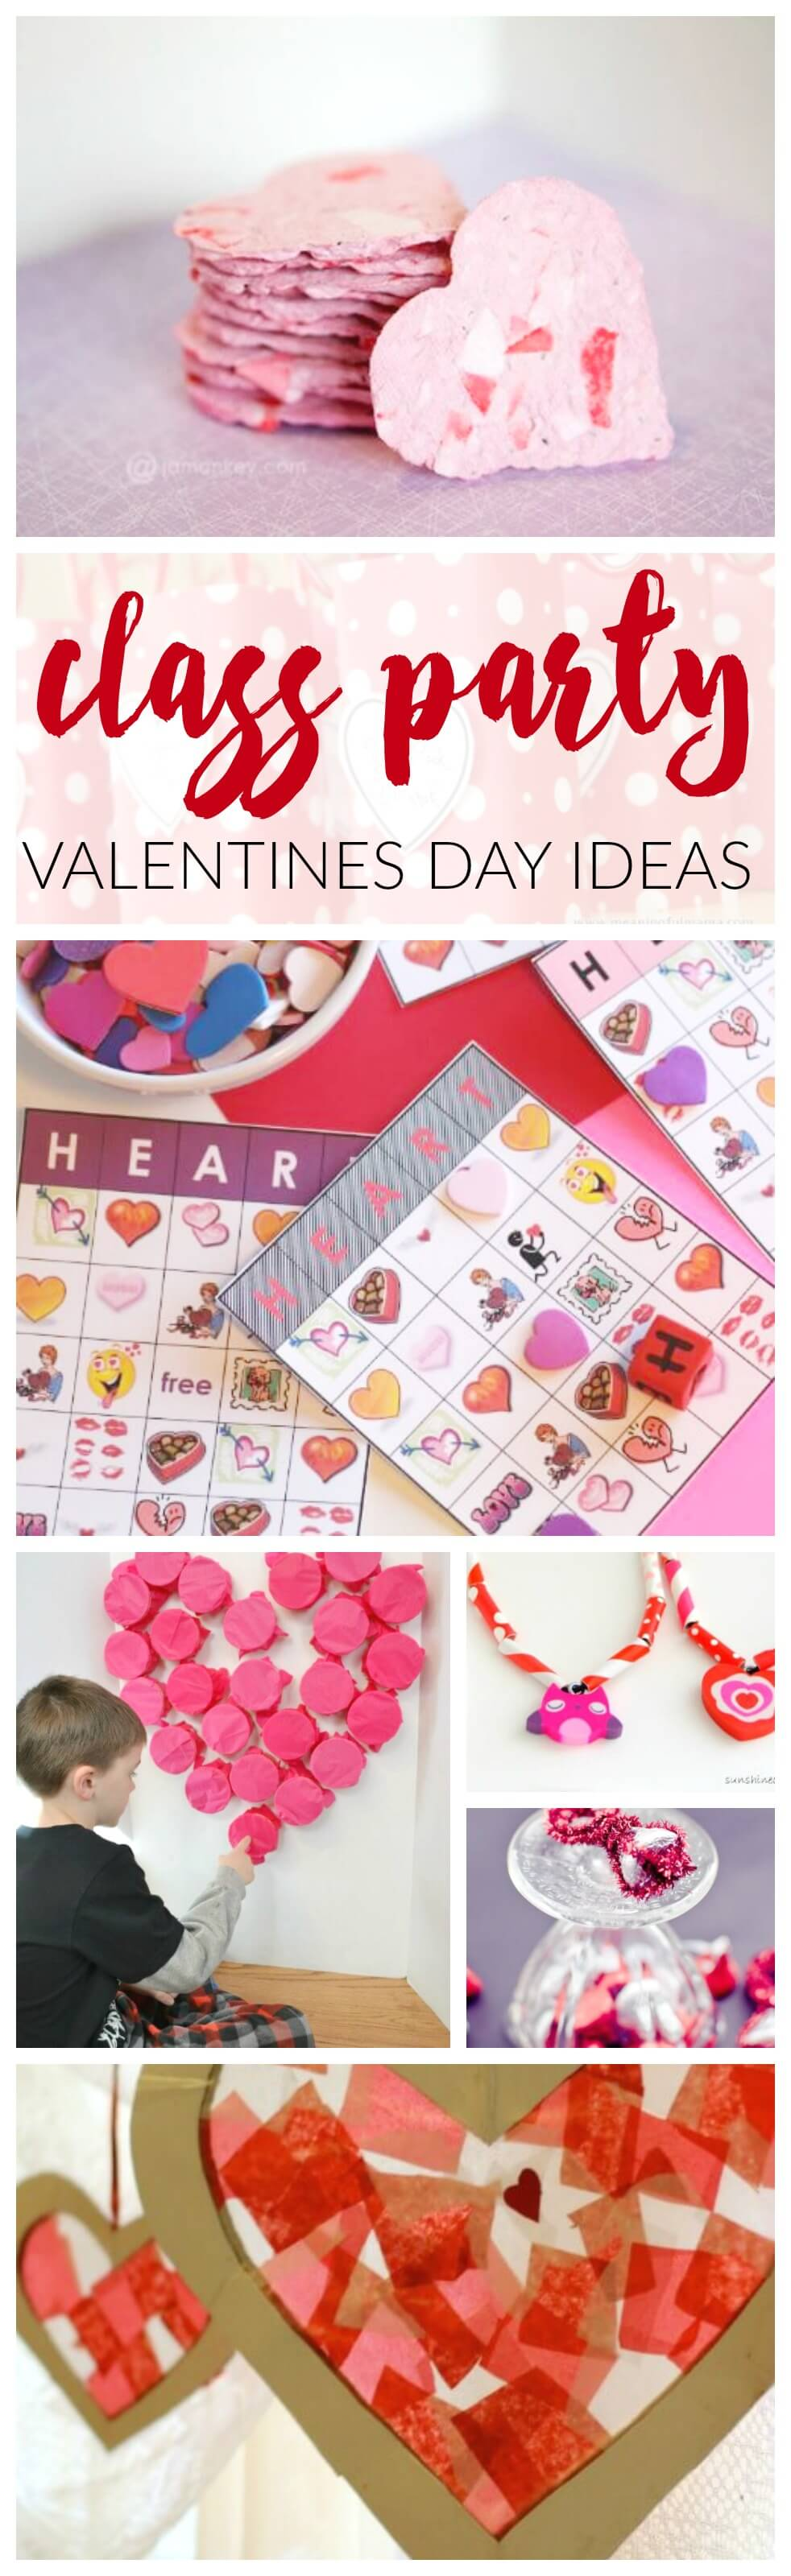 Valentines Day Class Party Ideas